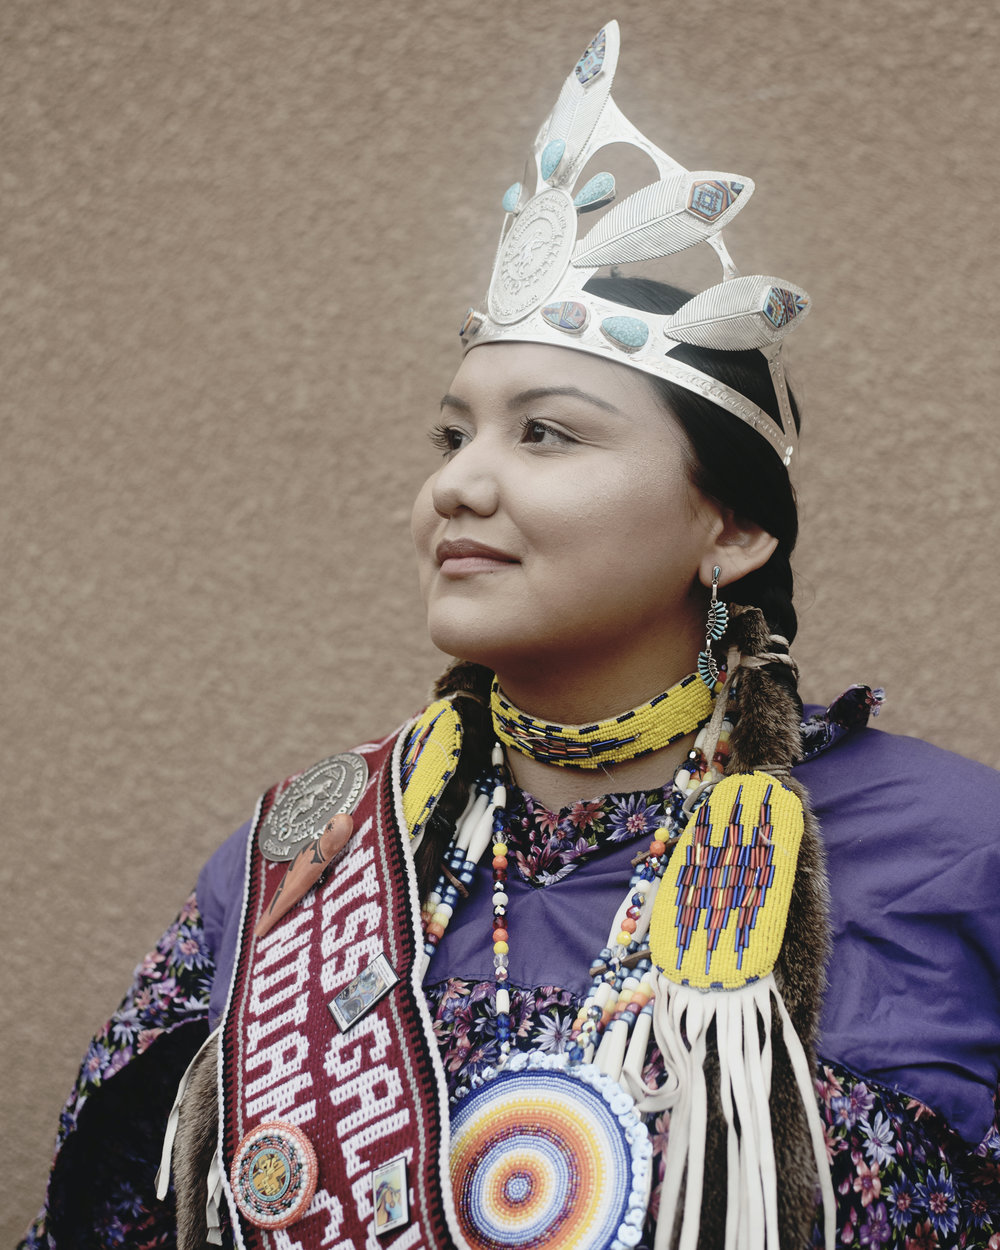 Lindsey Standoval, Miss Intertribal Ceremonial 2016